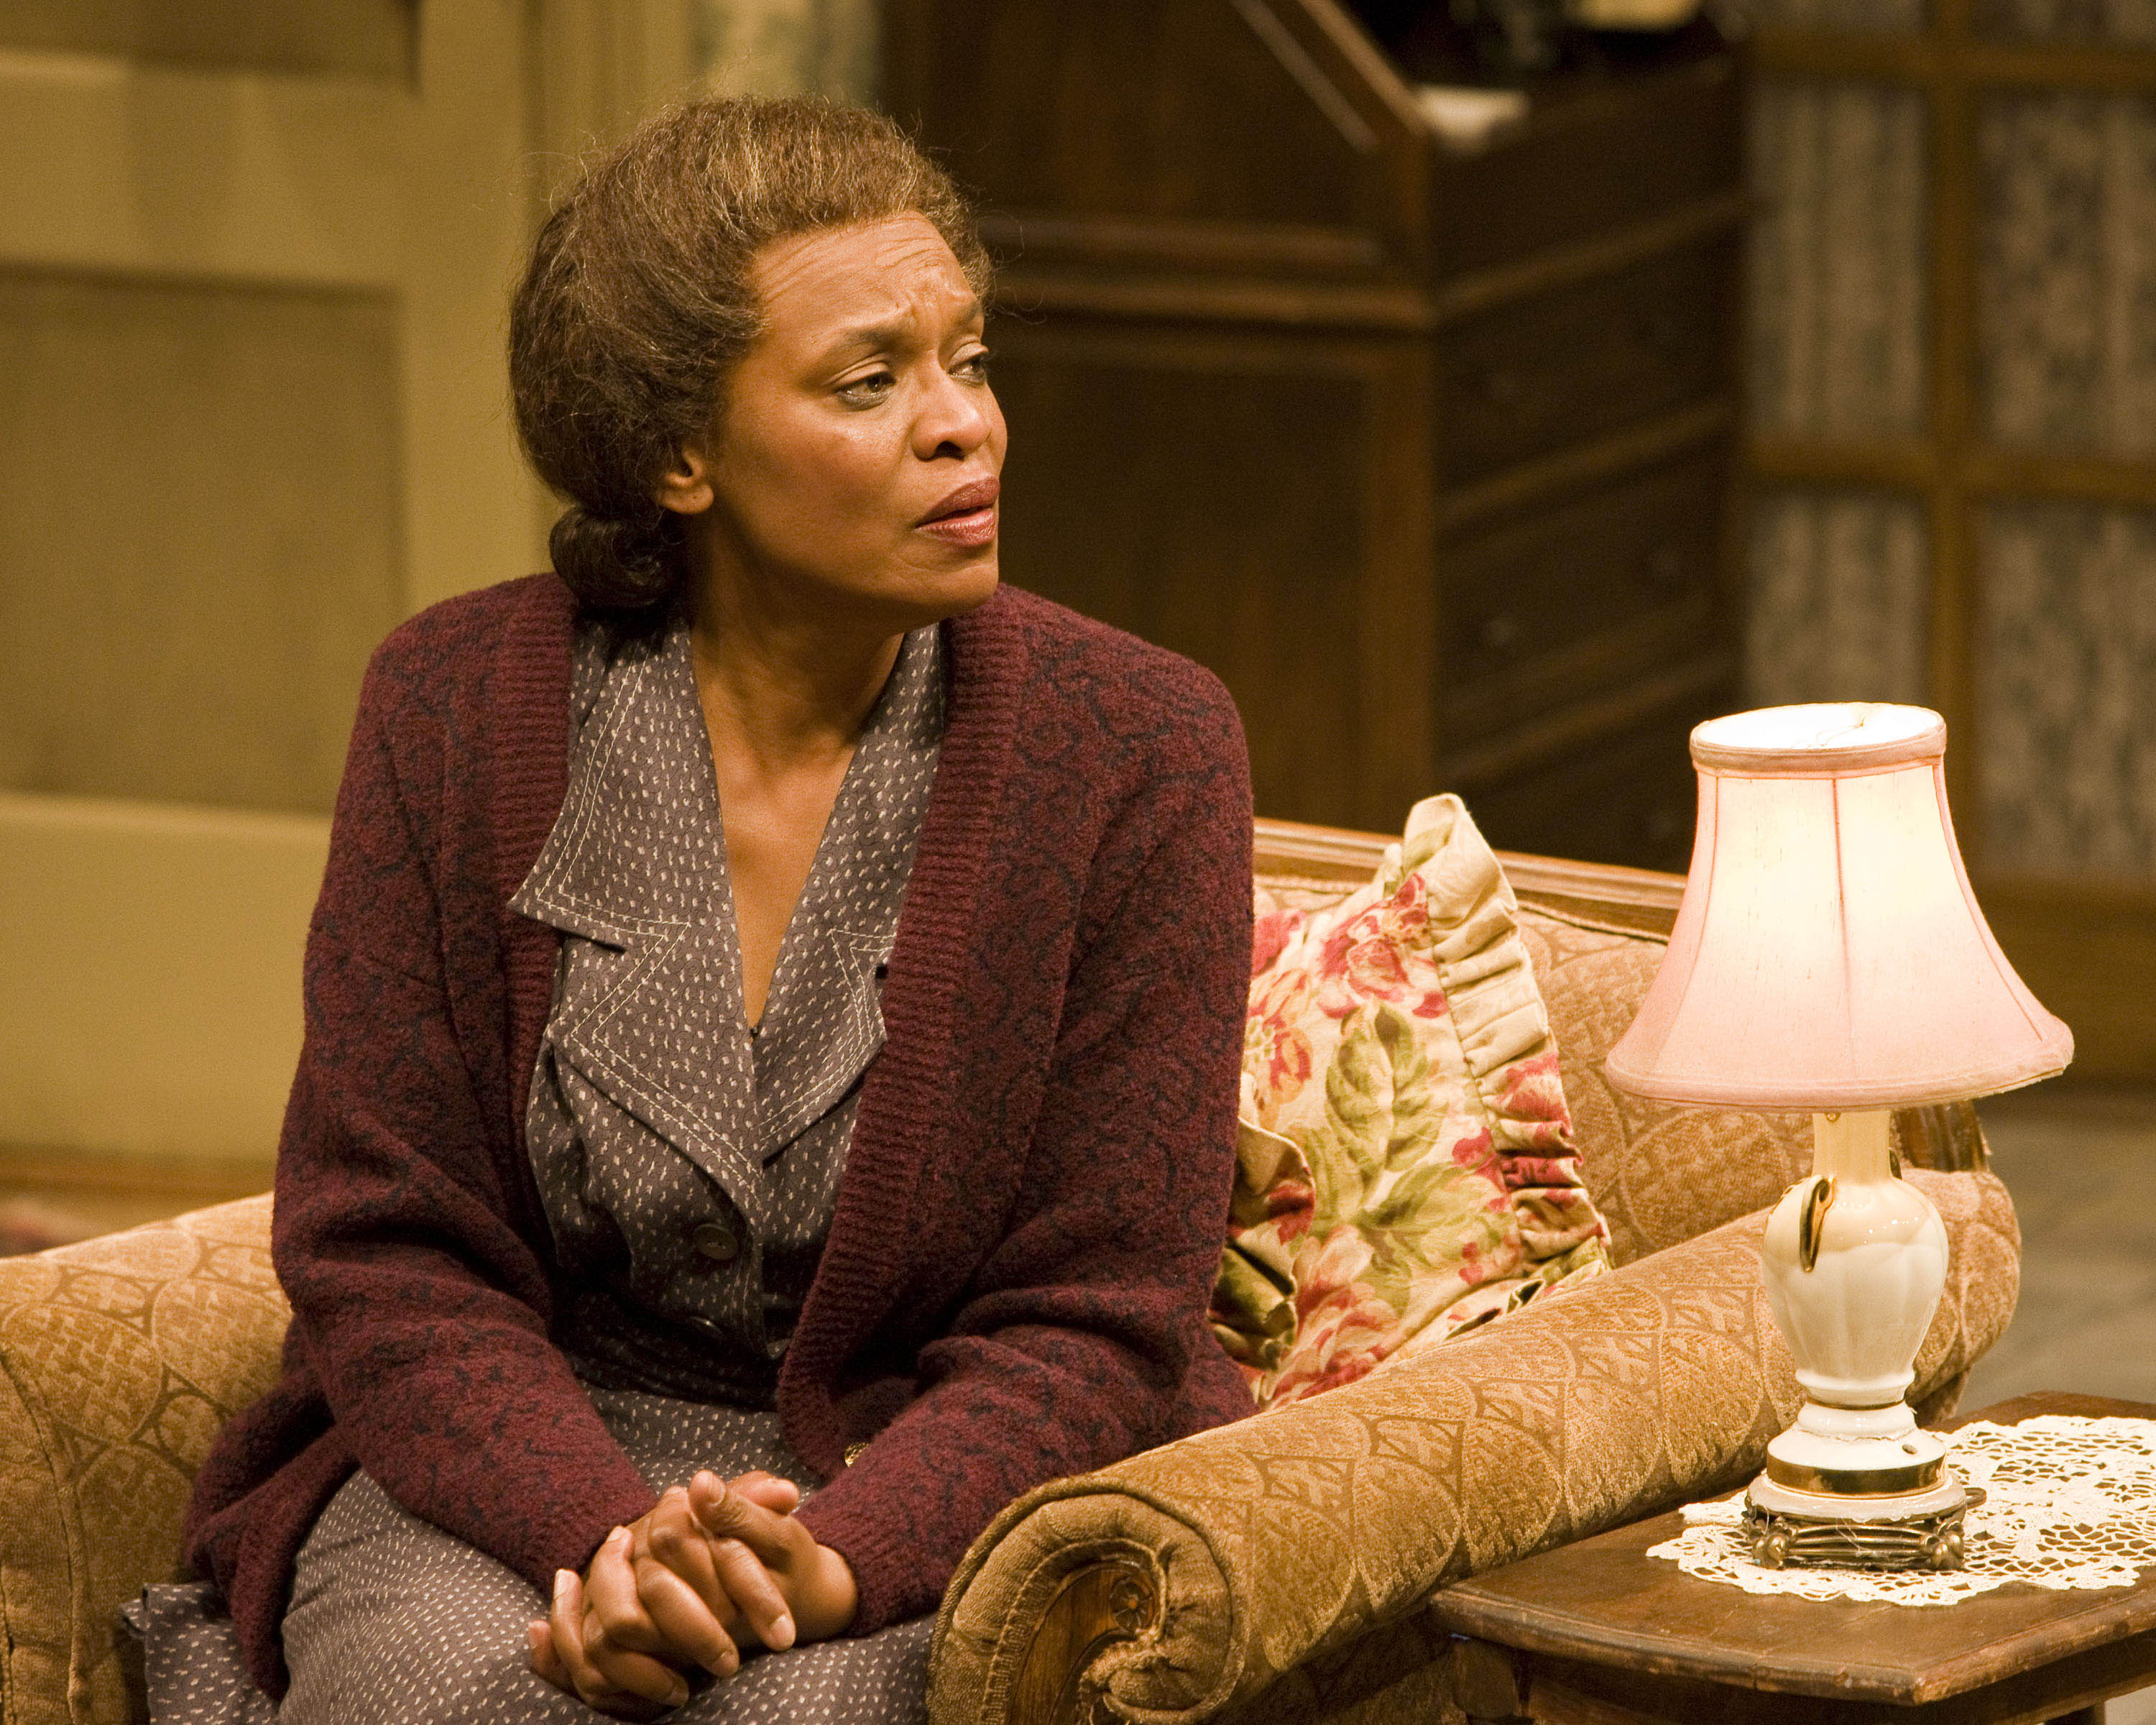 Malaria Essay A Raisin In The Sun And Clybourne Park  Los Angeles Theater Review By  Harvey Perr Traveling Essay Sample also An Essay On Courage Los Angeles Theater Reviews Clybourne Park Mark Taper Forum A  Best College Application Essay